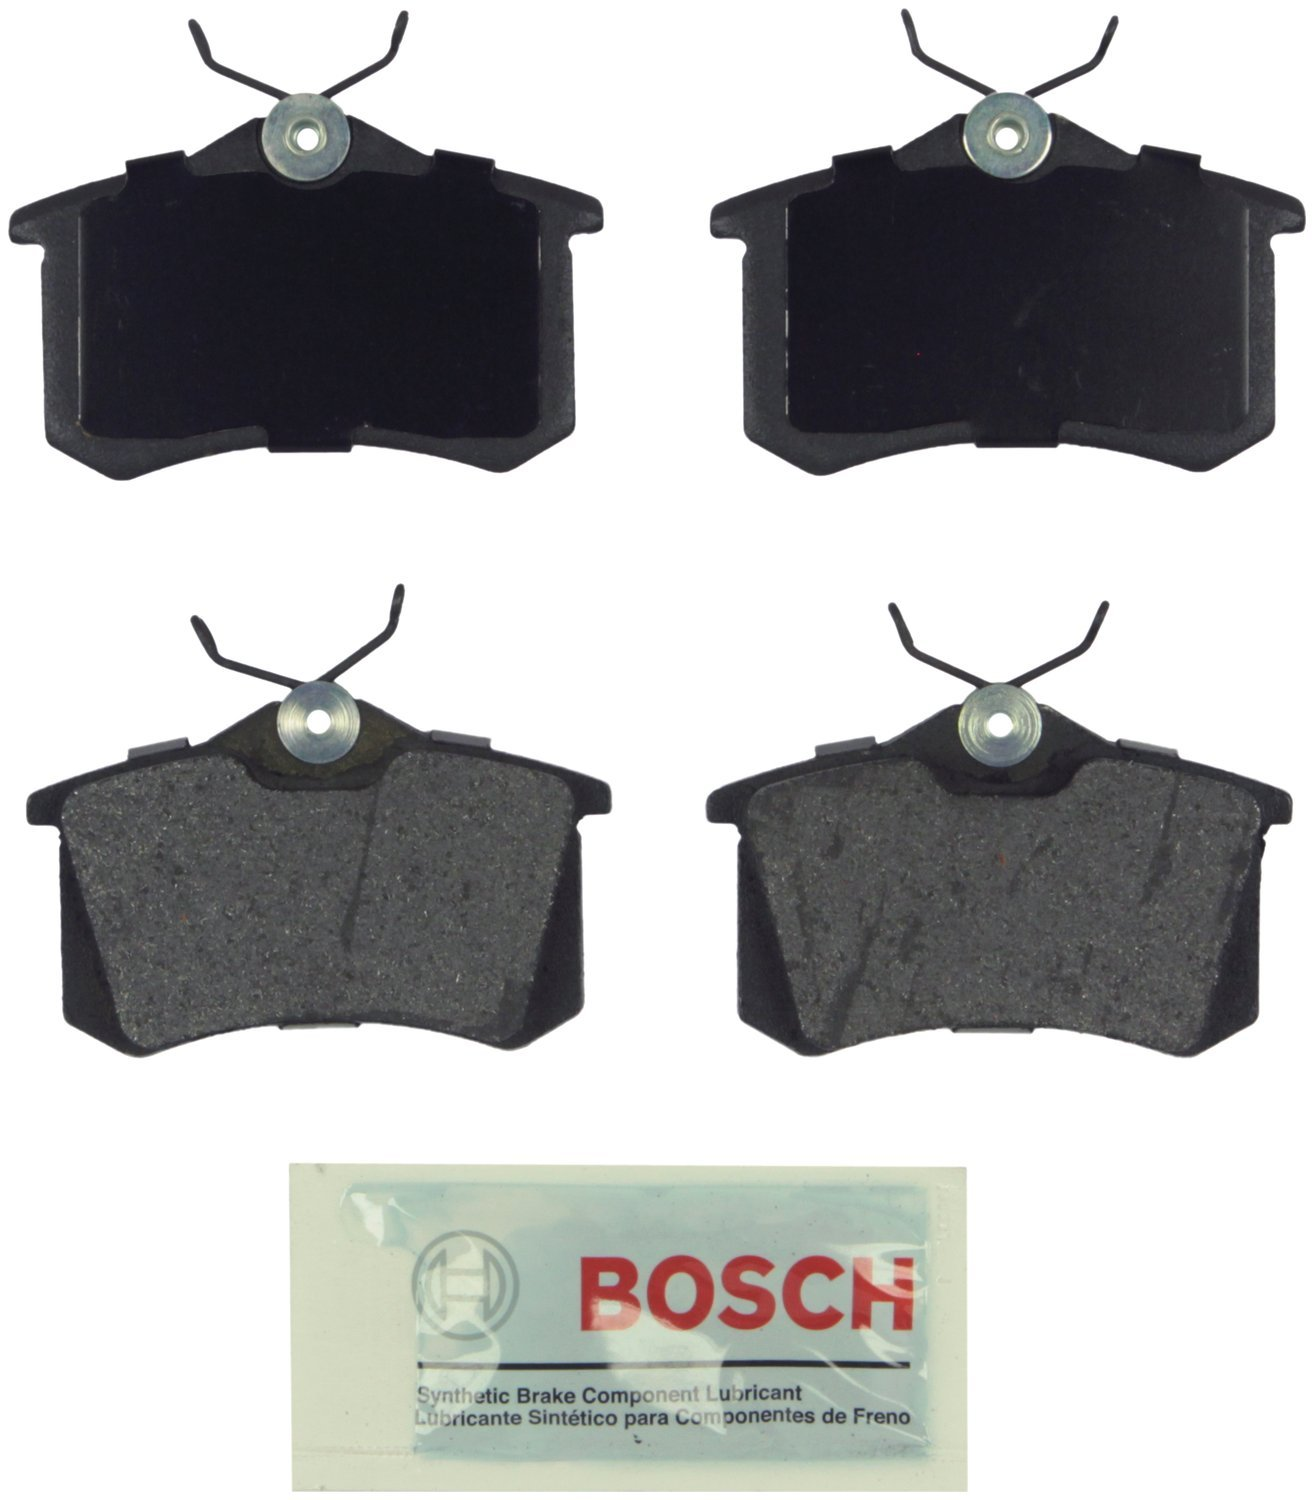 Bosch BP340 QuietCast Brake Pad Set